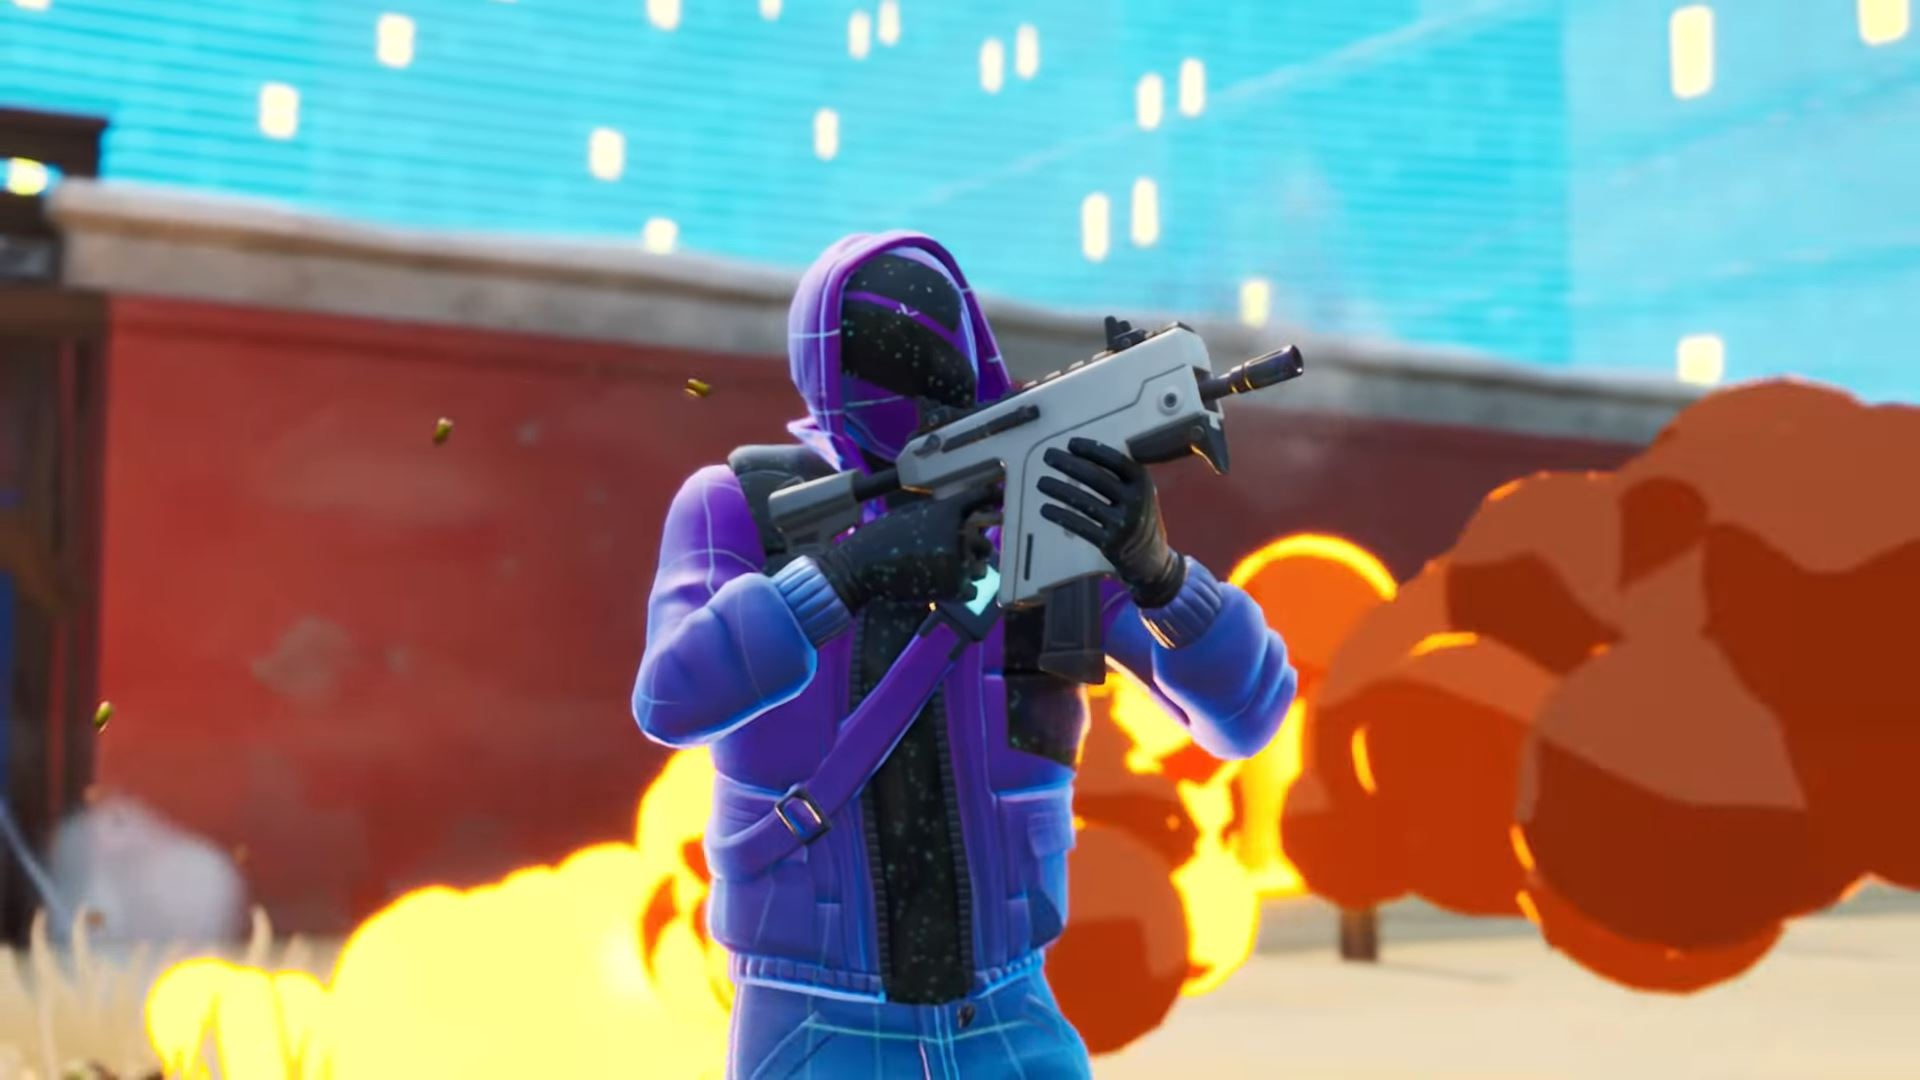 Fortnite Zone Wars Ltm Challenges And Rewards Live Some of the rewards were a spray, back bling, and style for the back board. fortnite zone wars ltm challenges and